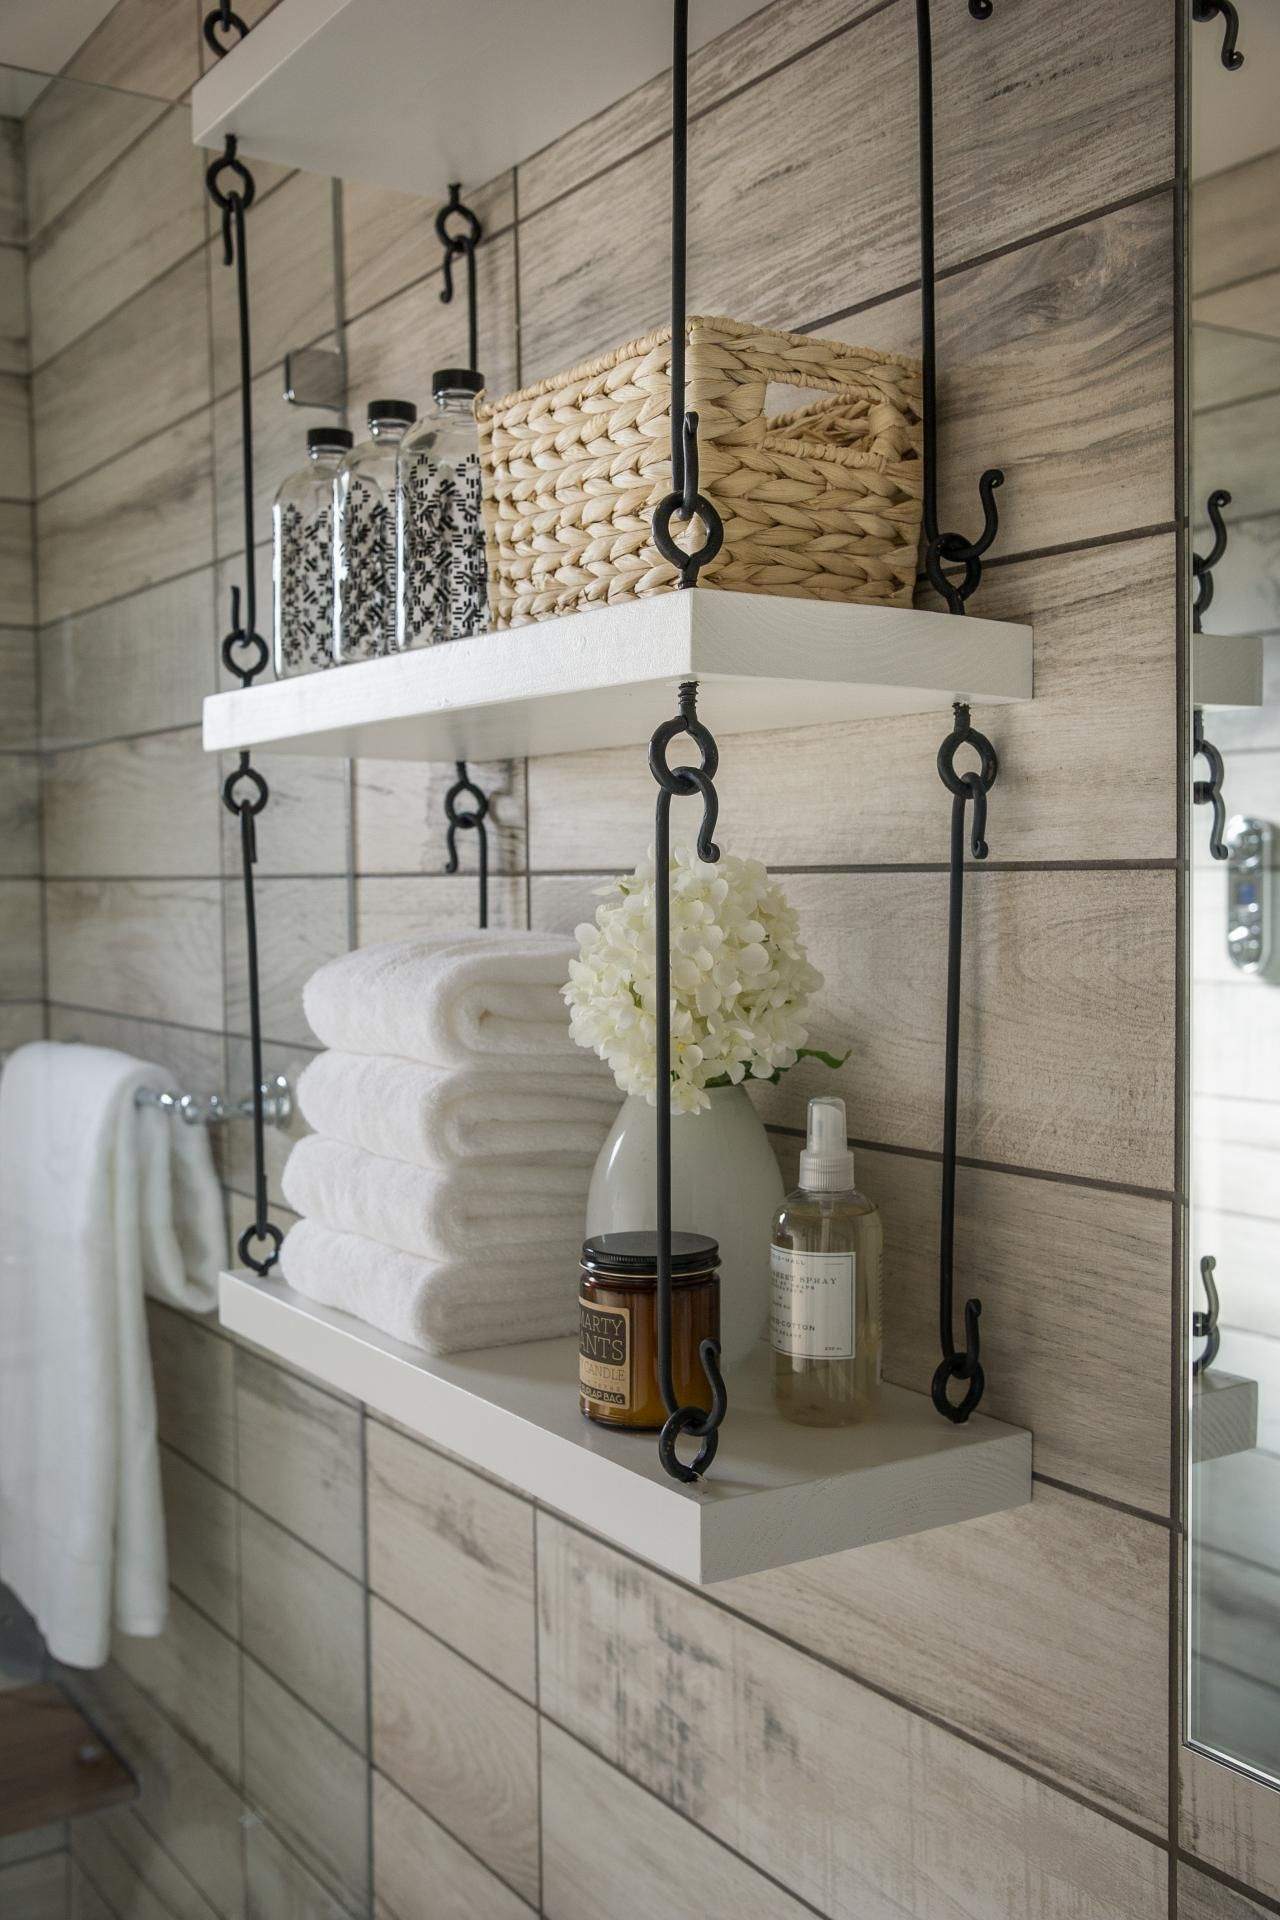 Beau Custom Designed Hanging Shelves Add Much Needed Storage To The Bathroom.